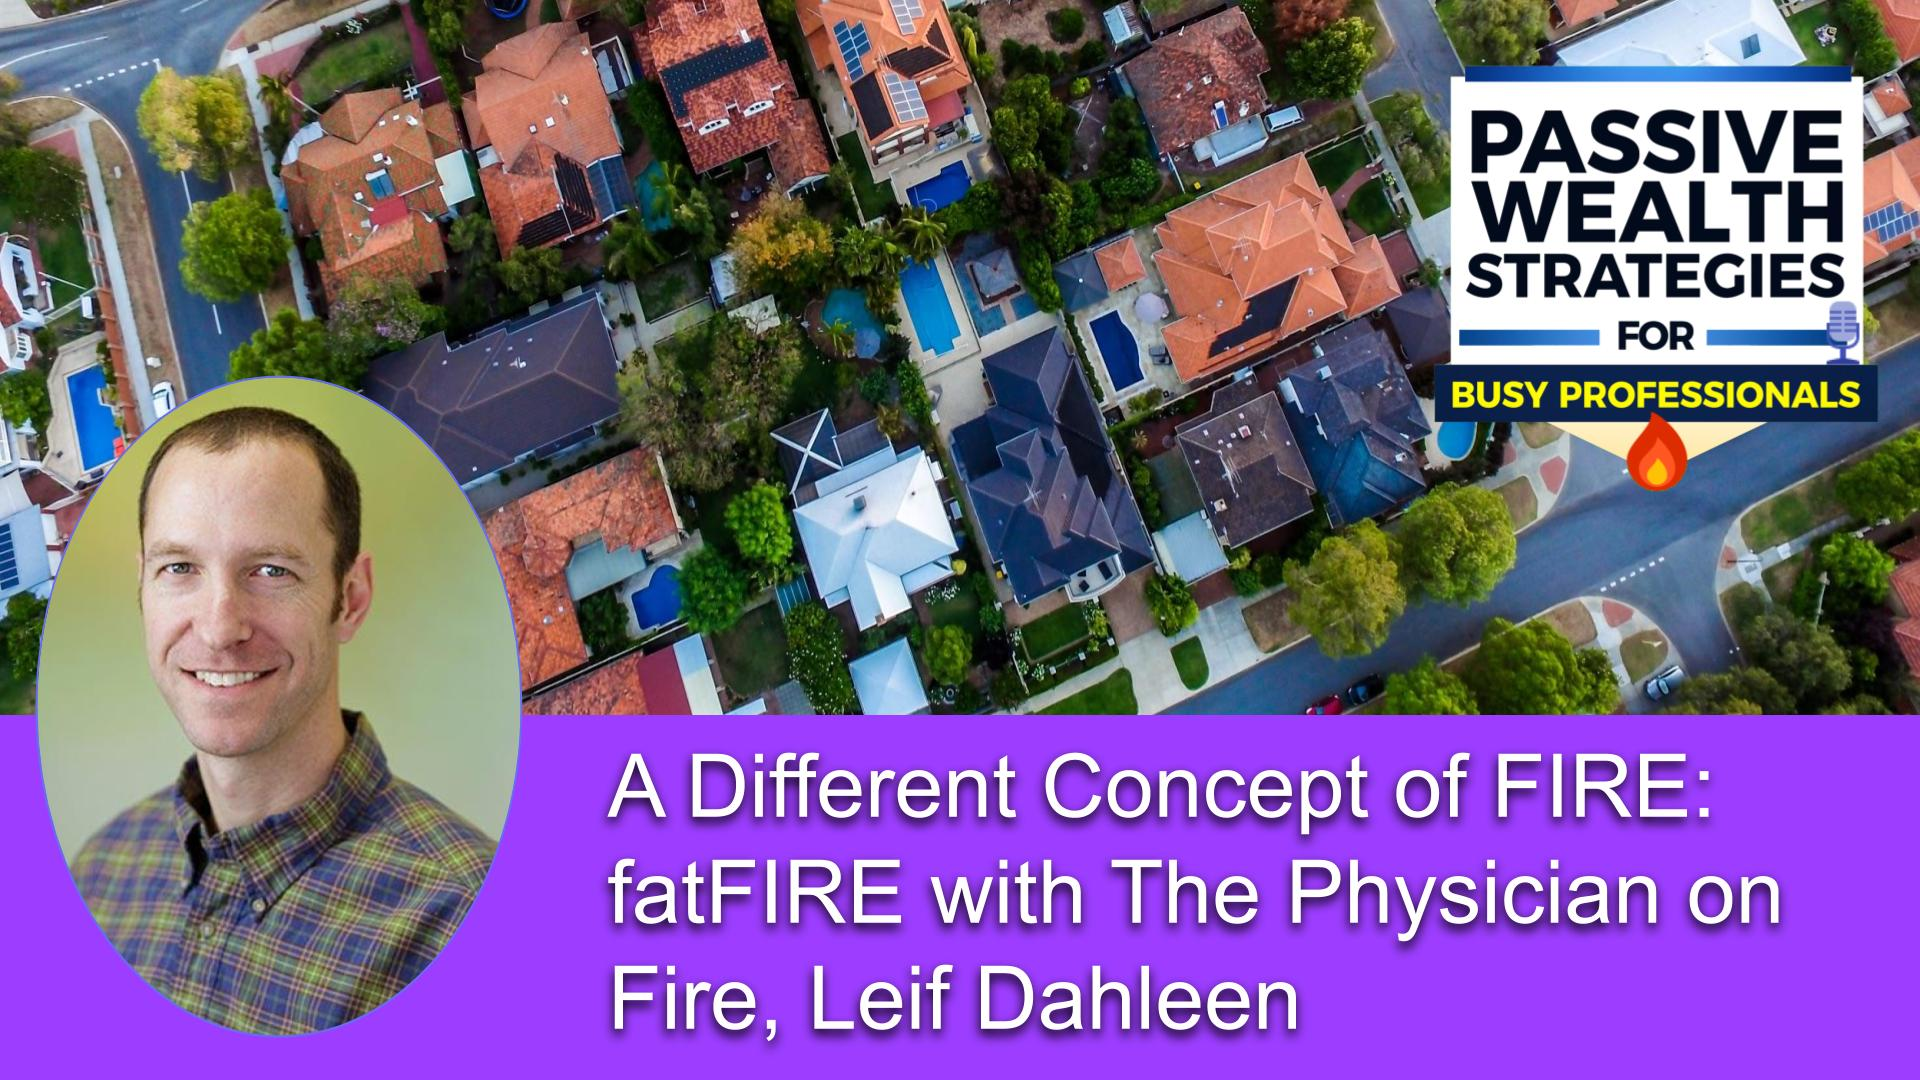 173 A Different Concept of FIRE_ fatFIRE with The Physician on Fire, Leif Dahleen